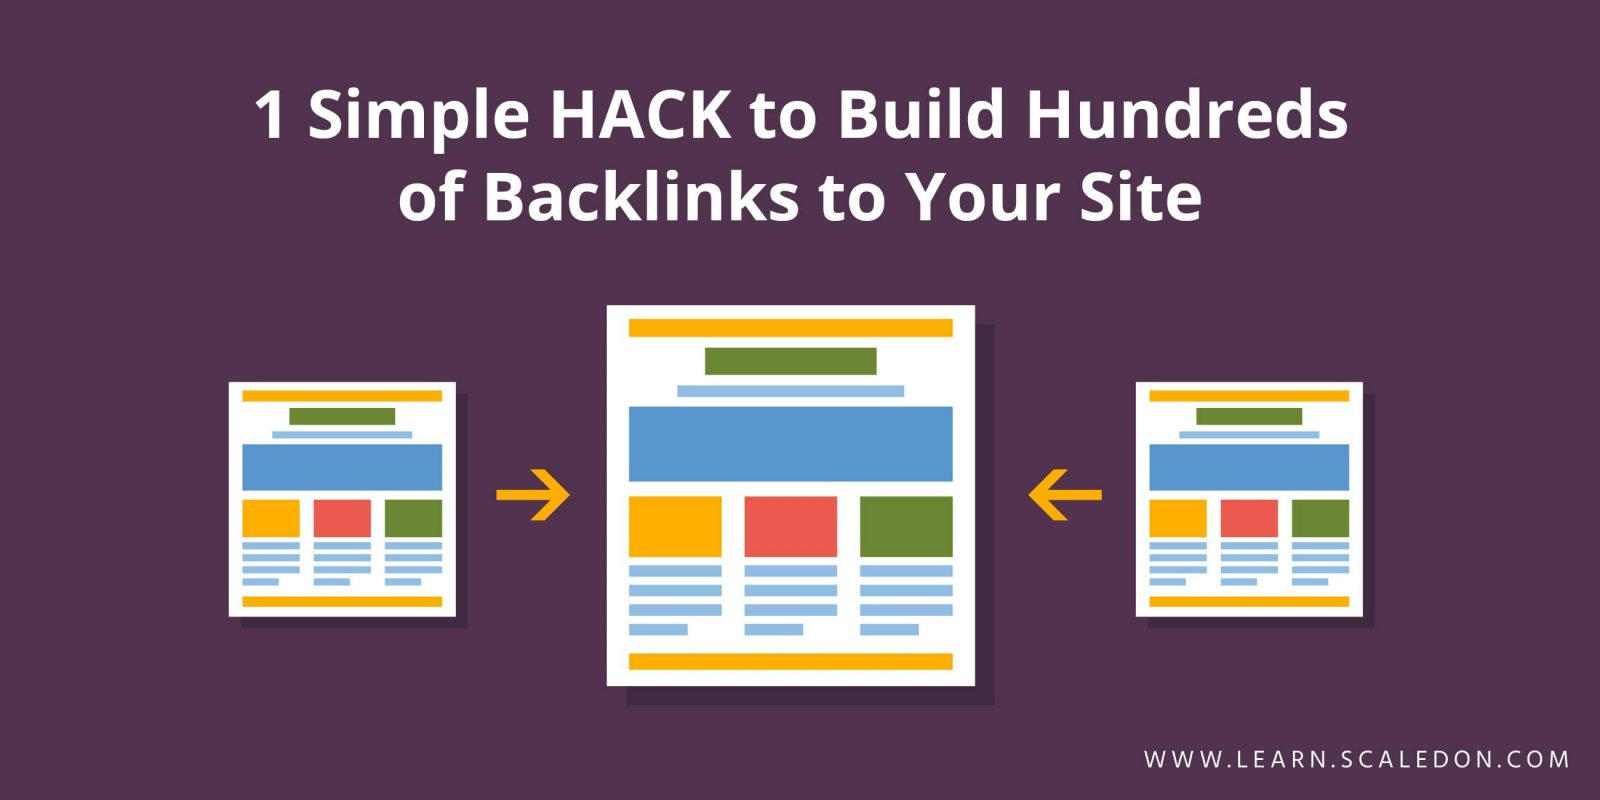 1 Simple HACK to Build Hundreds of Backlinks to Your Site